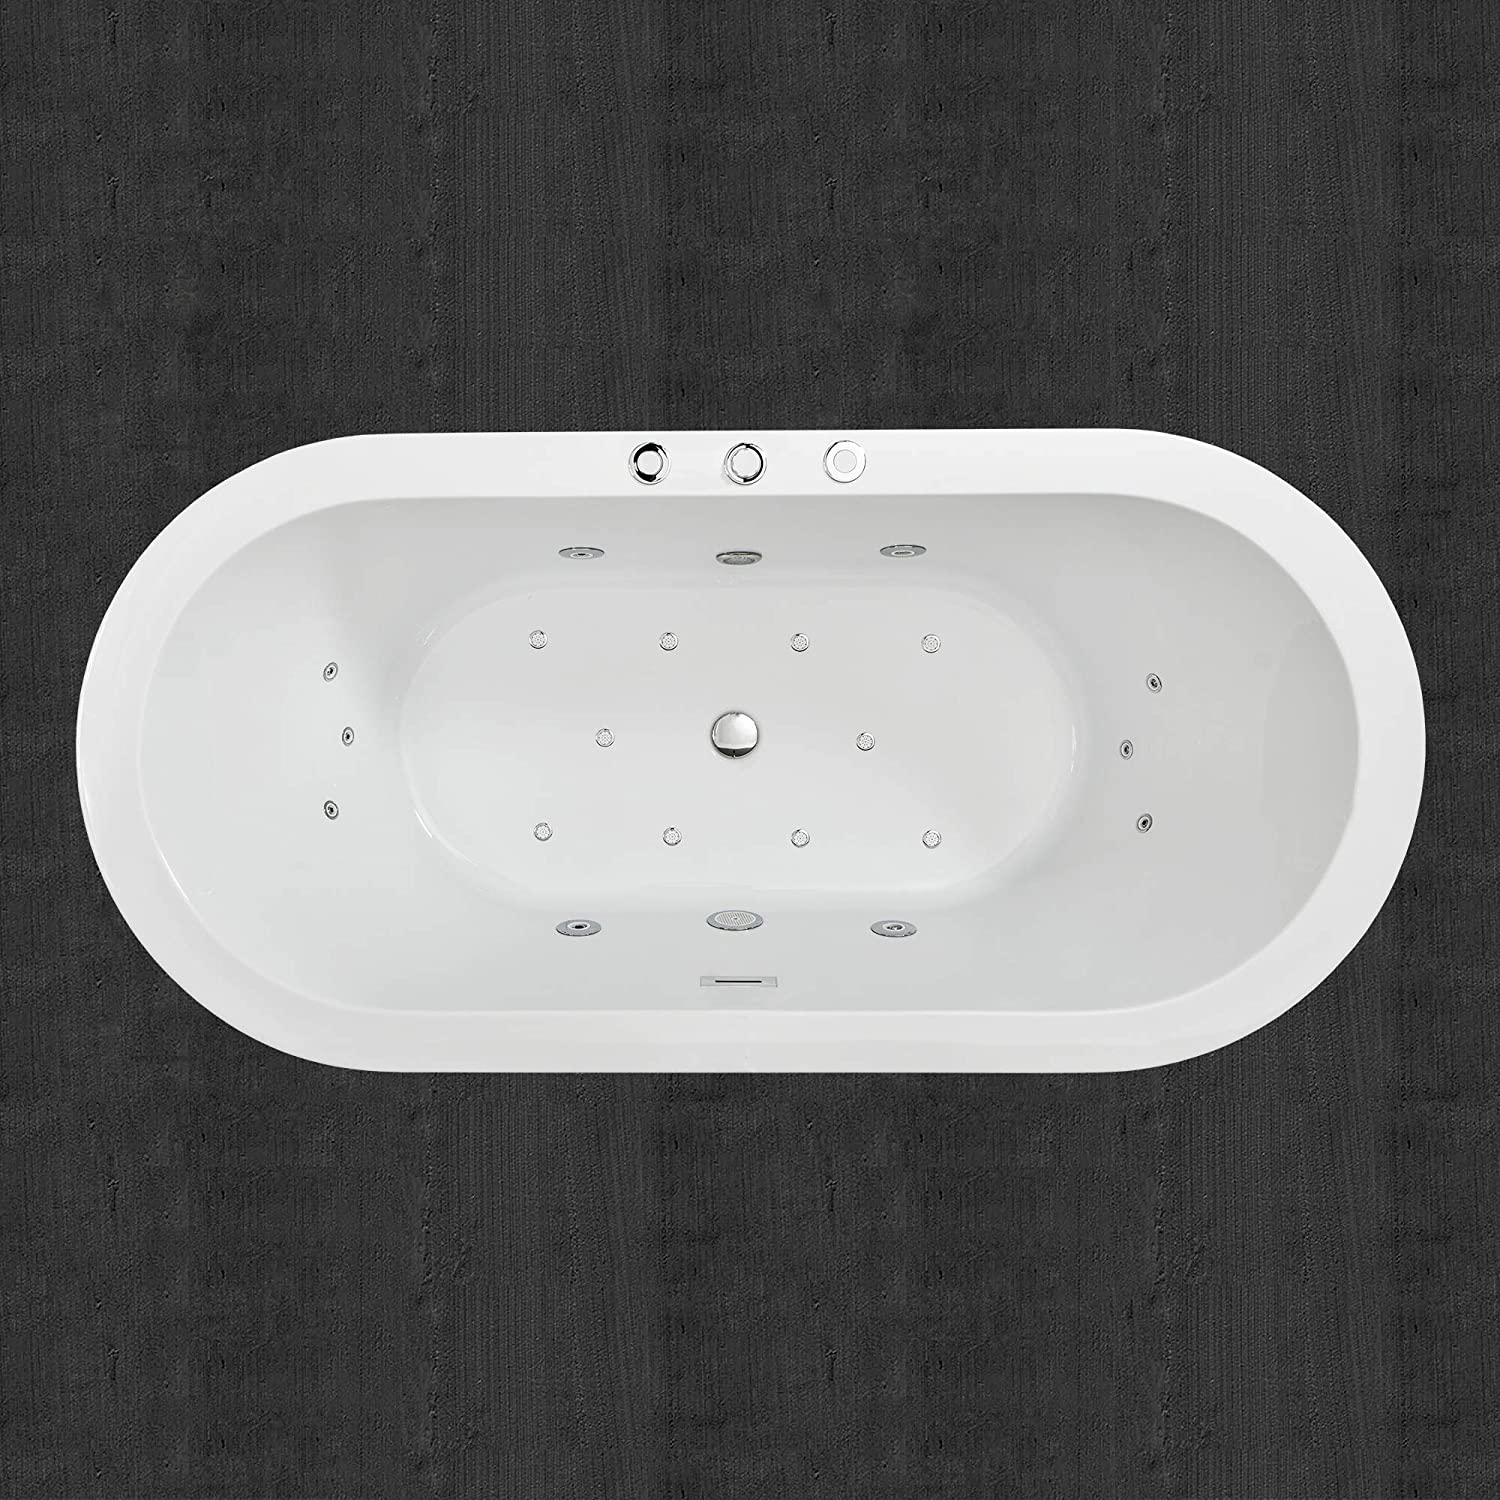 Best Whirlpool Tubs-Best features: Woodbridge White 67 inches